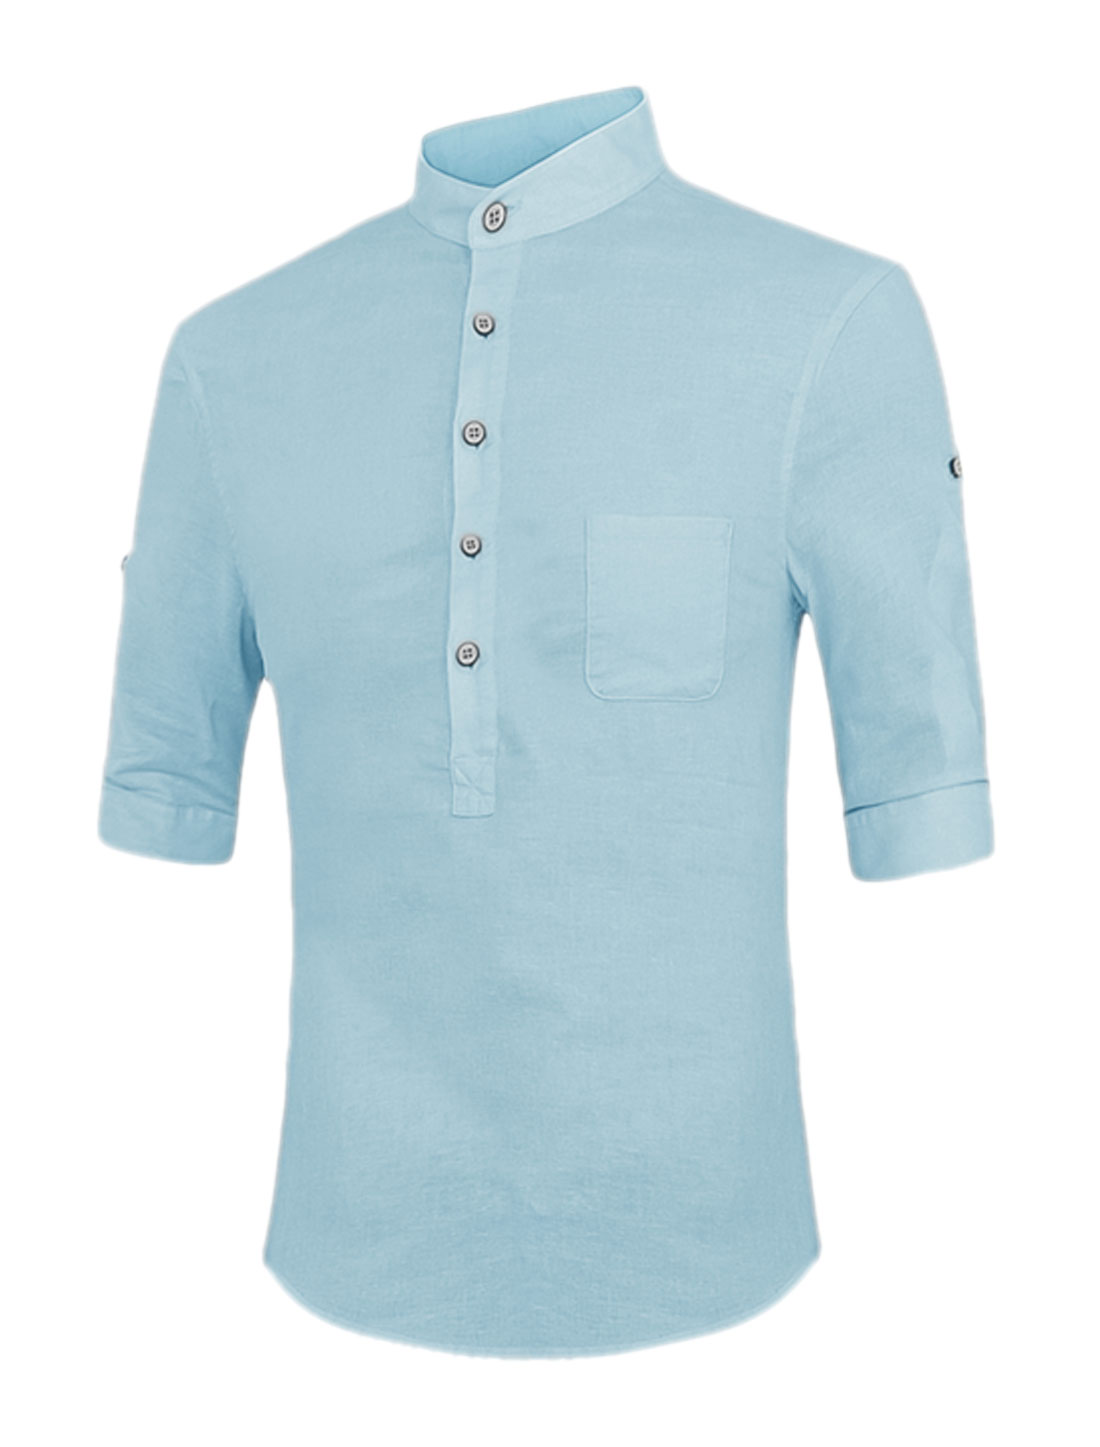 Men Stand Collar Roll Up Sleeves Split Sides Button Upper Shirt Light Blue M